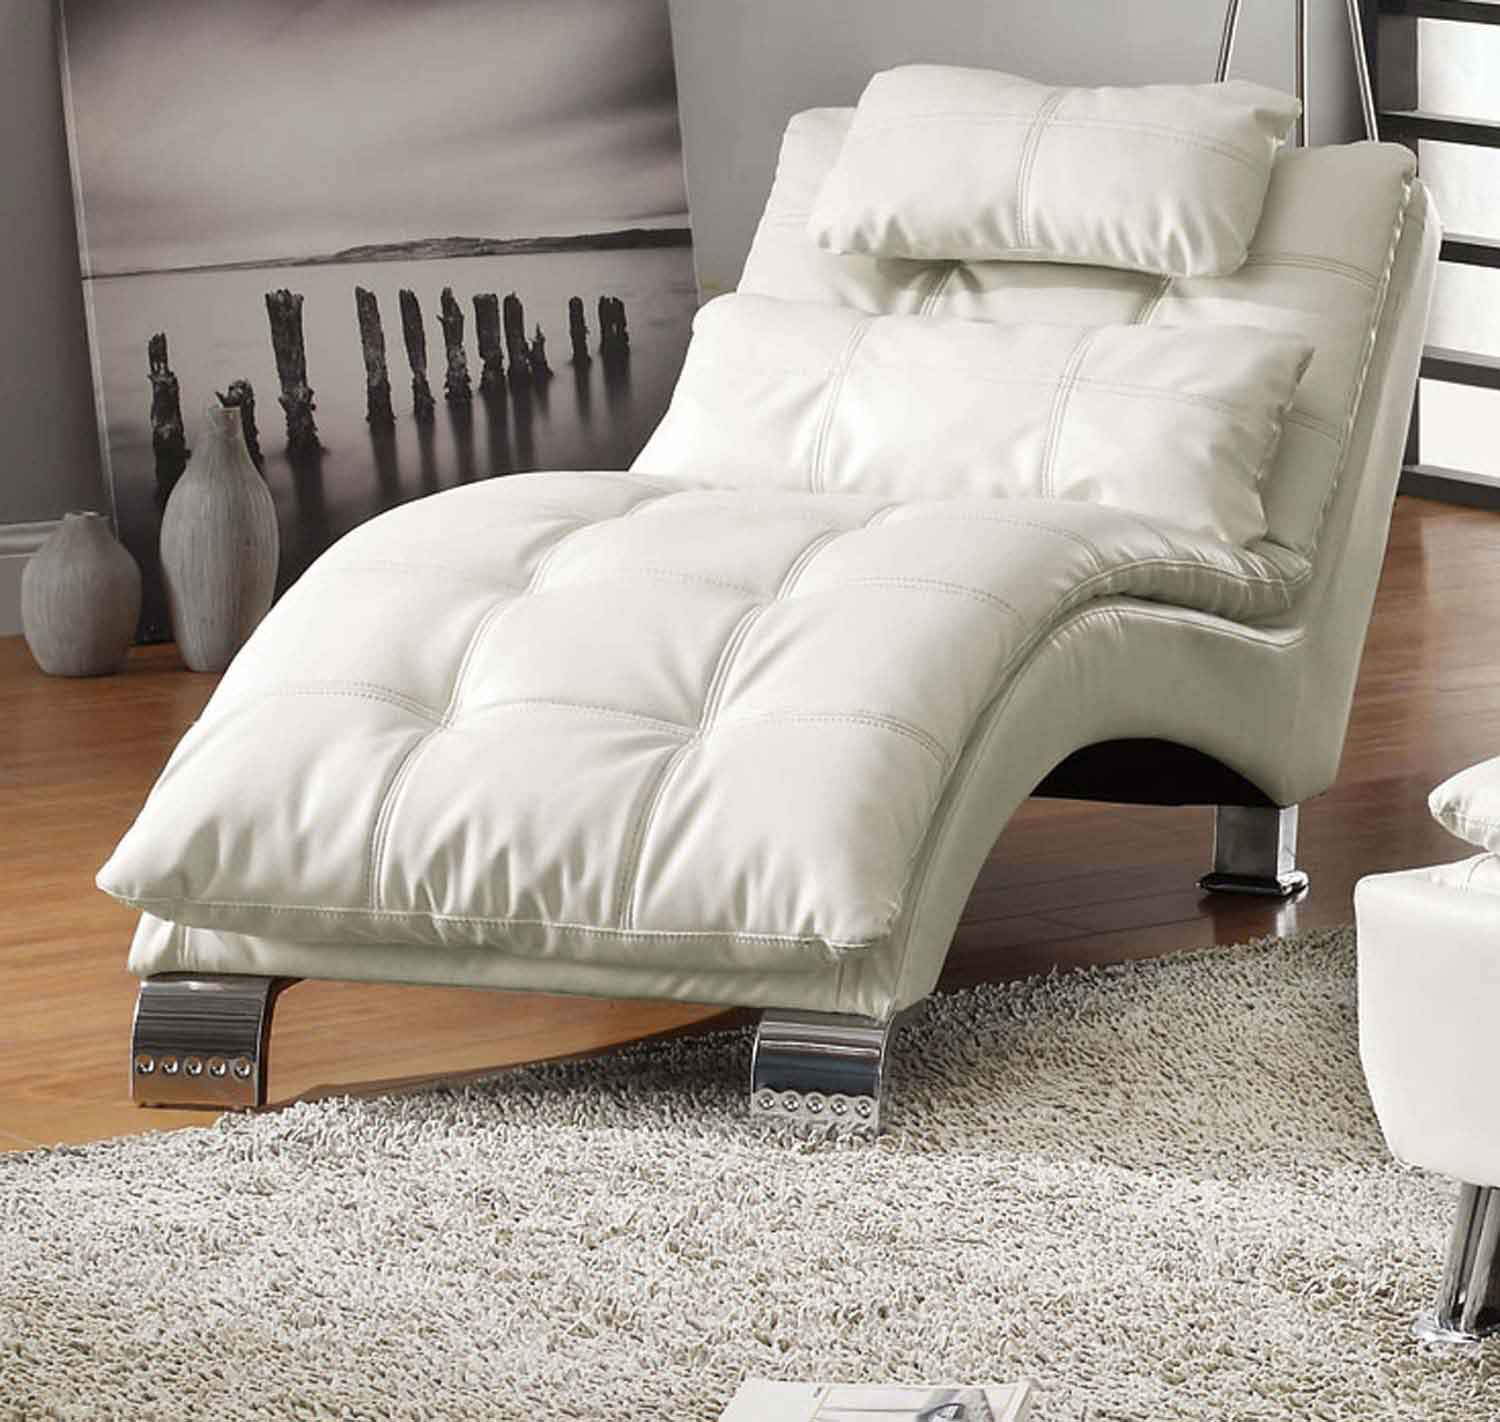 Sofa Bed White Marjen Of Chicago Chicago Discount